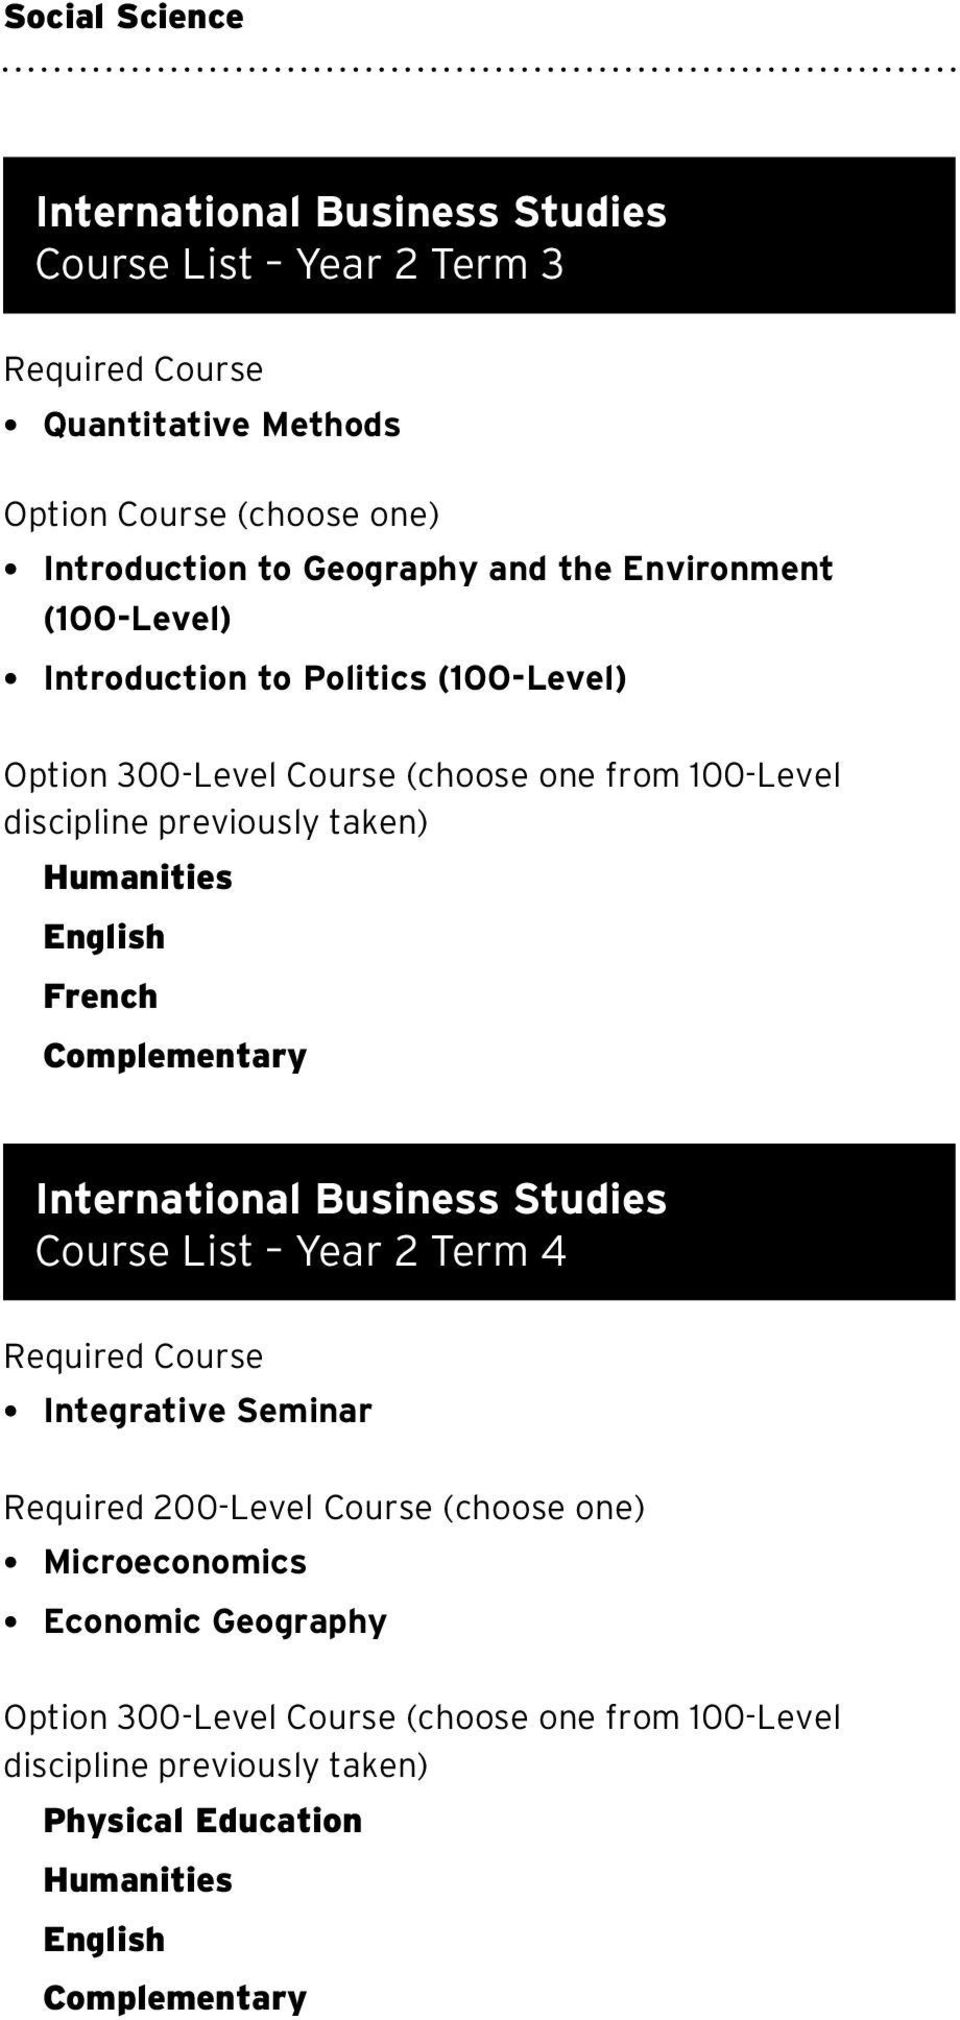 100-Level discipline previously taken) International Business Studies Course List Year 2 Term 4 Required Course Integrative Seminar